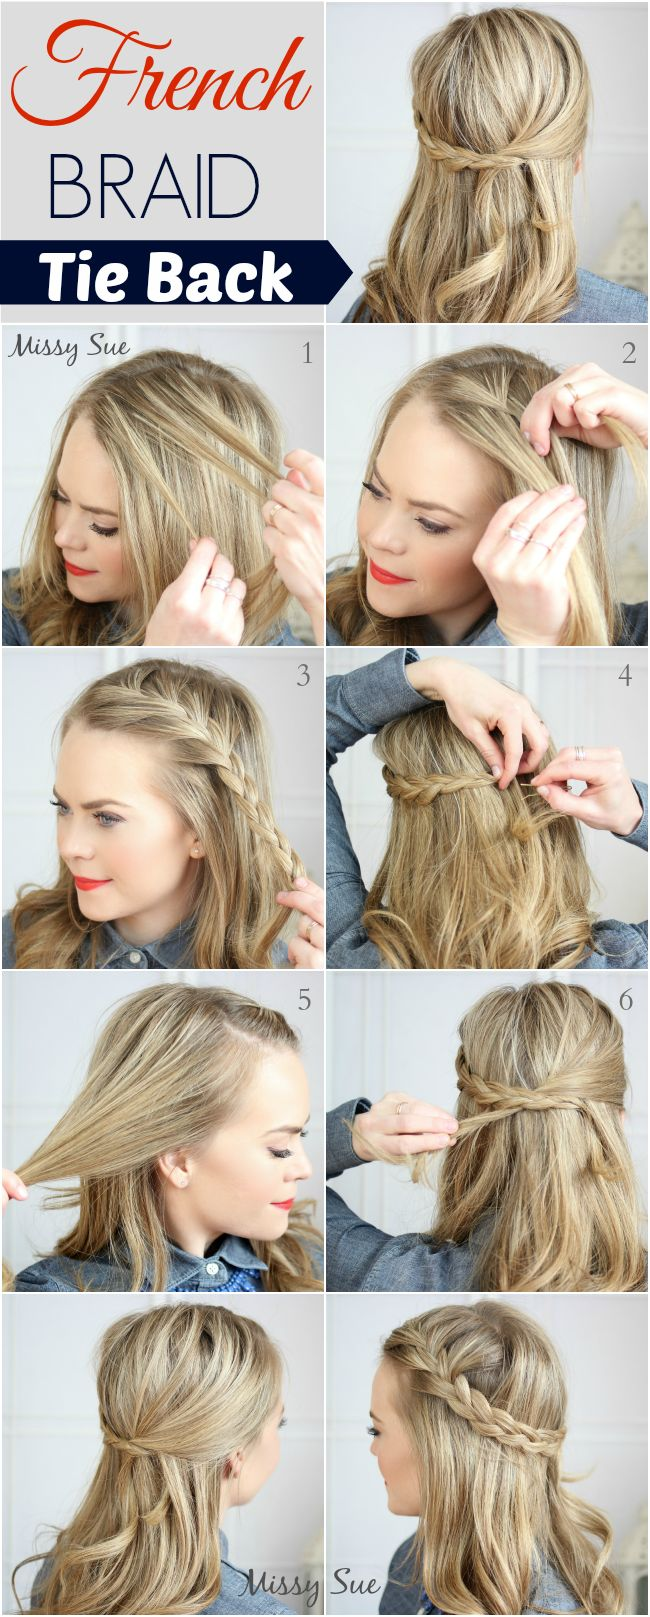 french-braid-tie-back-missysue-blog